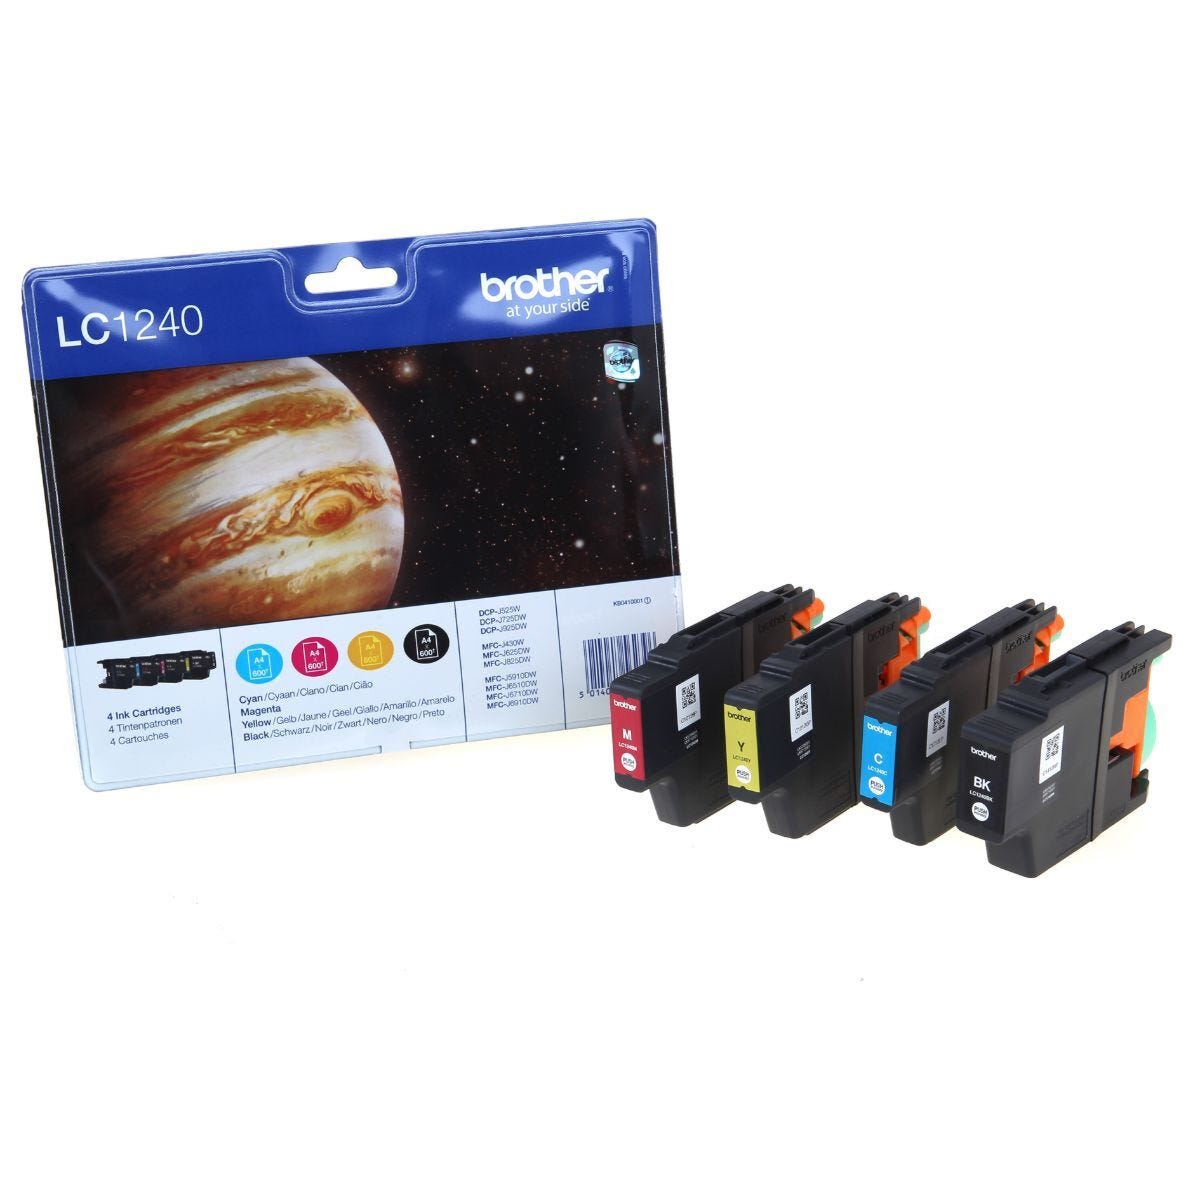 Brother LC1240 Multipack Ink Cartridges